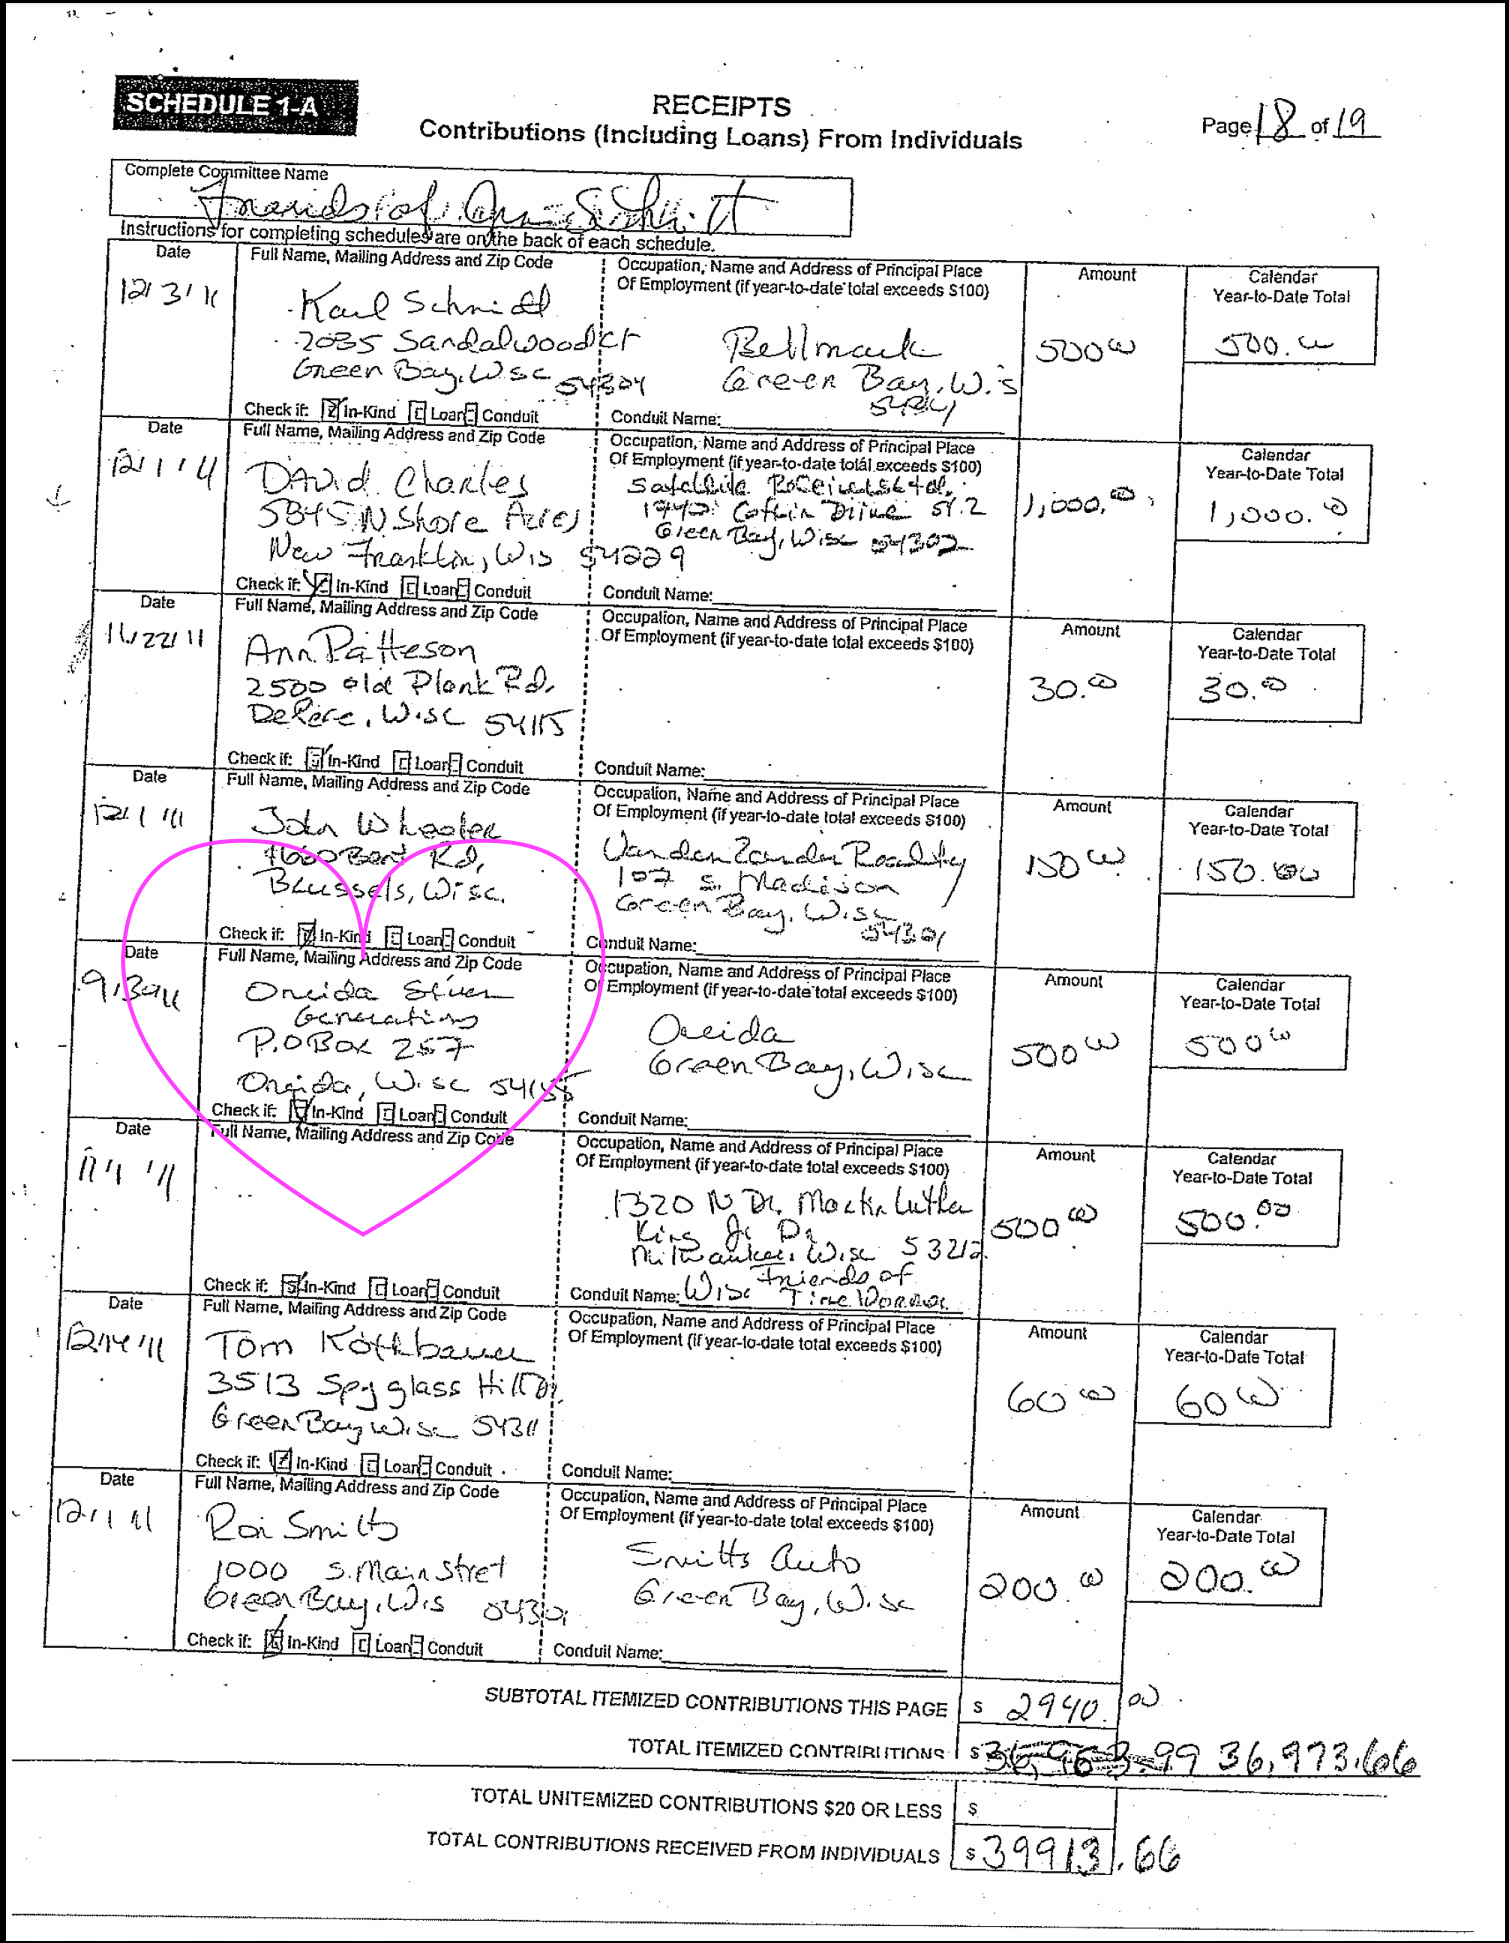 2014 oneida county tax rolls - Ledger Of Illegal Campaign Donation From Oneida Seven Genergations Corporation To Green Bay Mayor Jim Schmitt